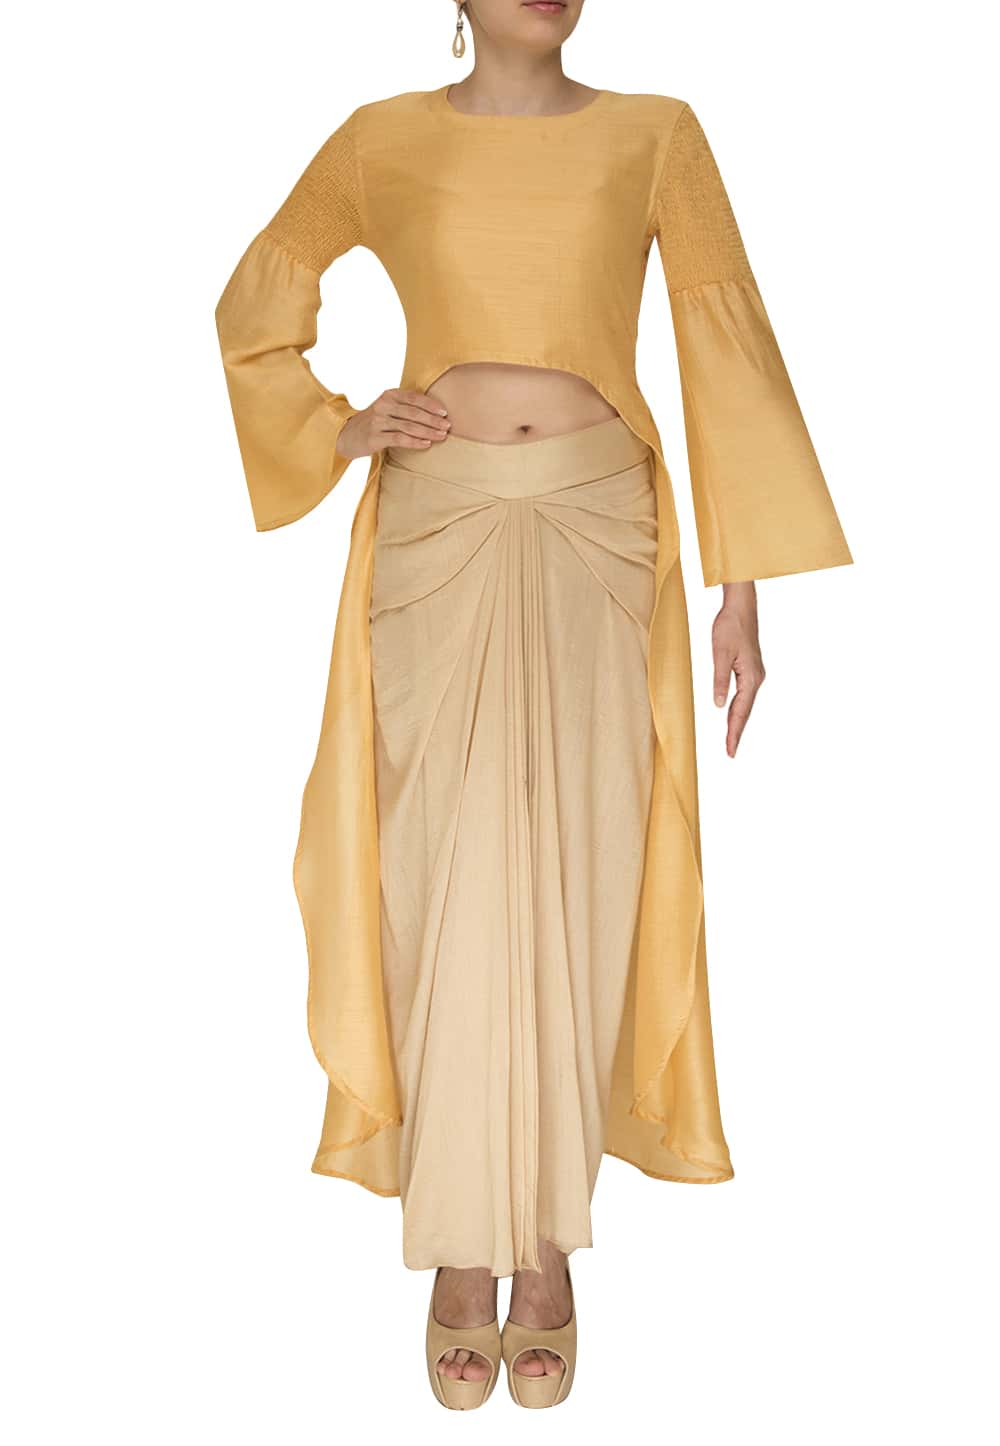 40348161d72a09 Nandita Thirani · Mustard High Low Top Paired with Cream Dhoti Skirt